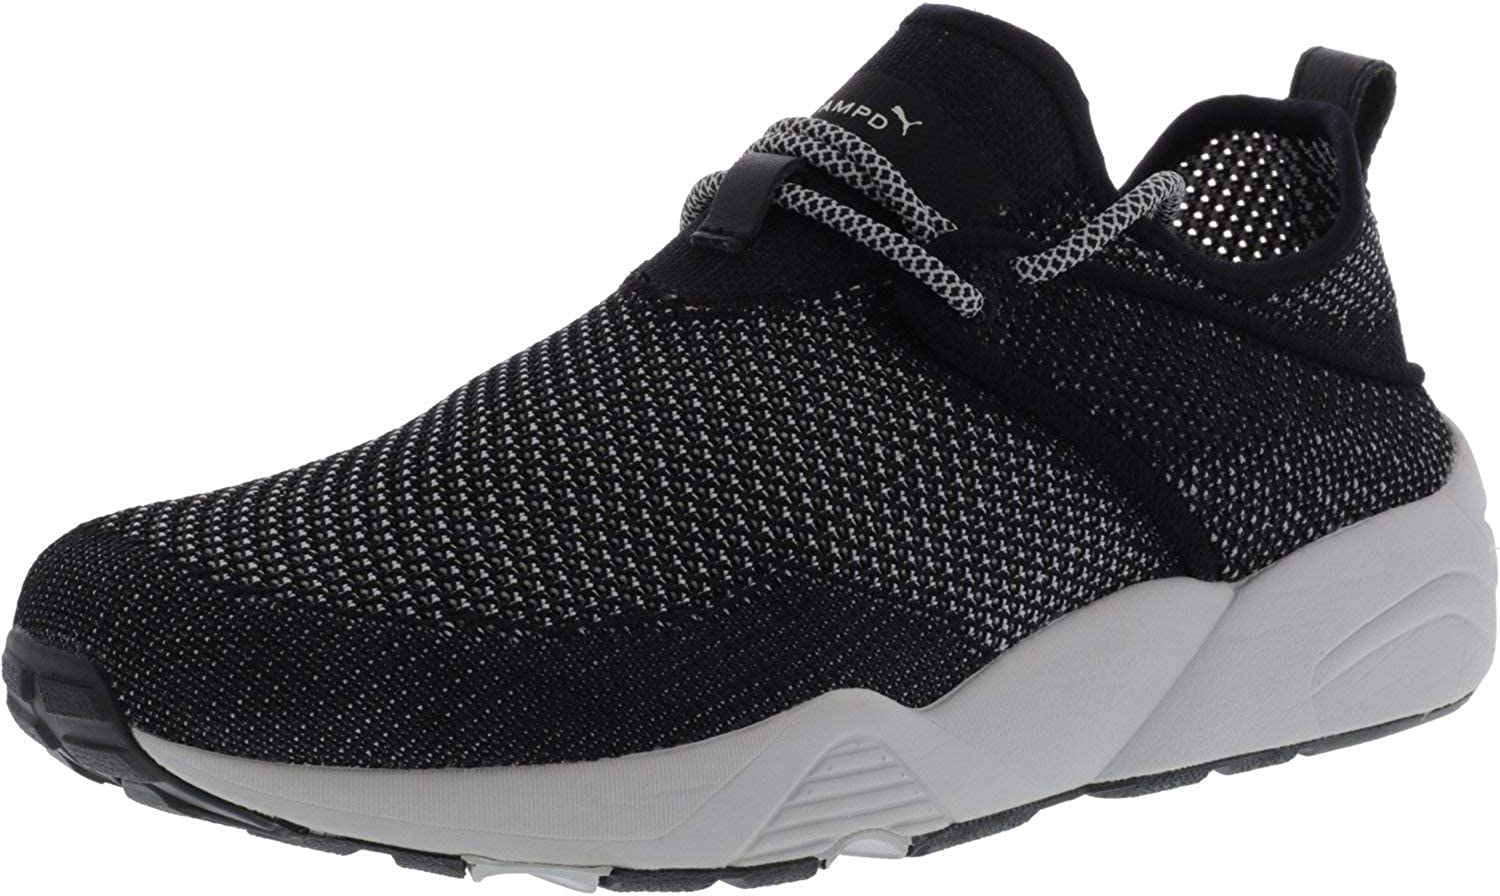 x Stampd Trinomic Woven Sneakers